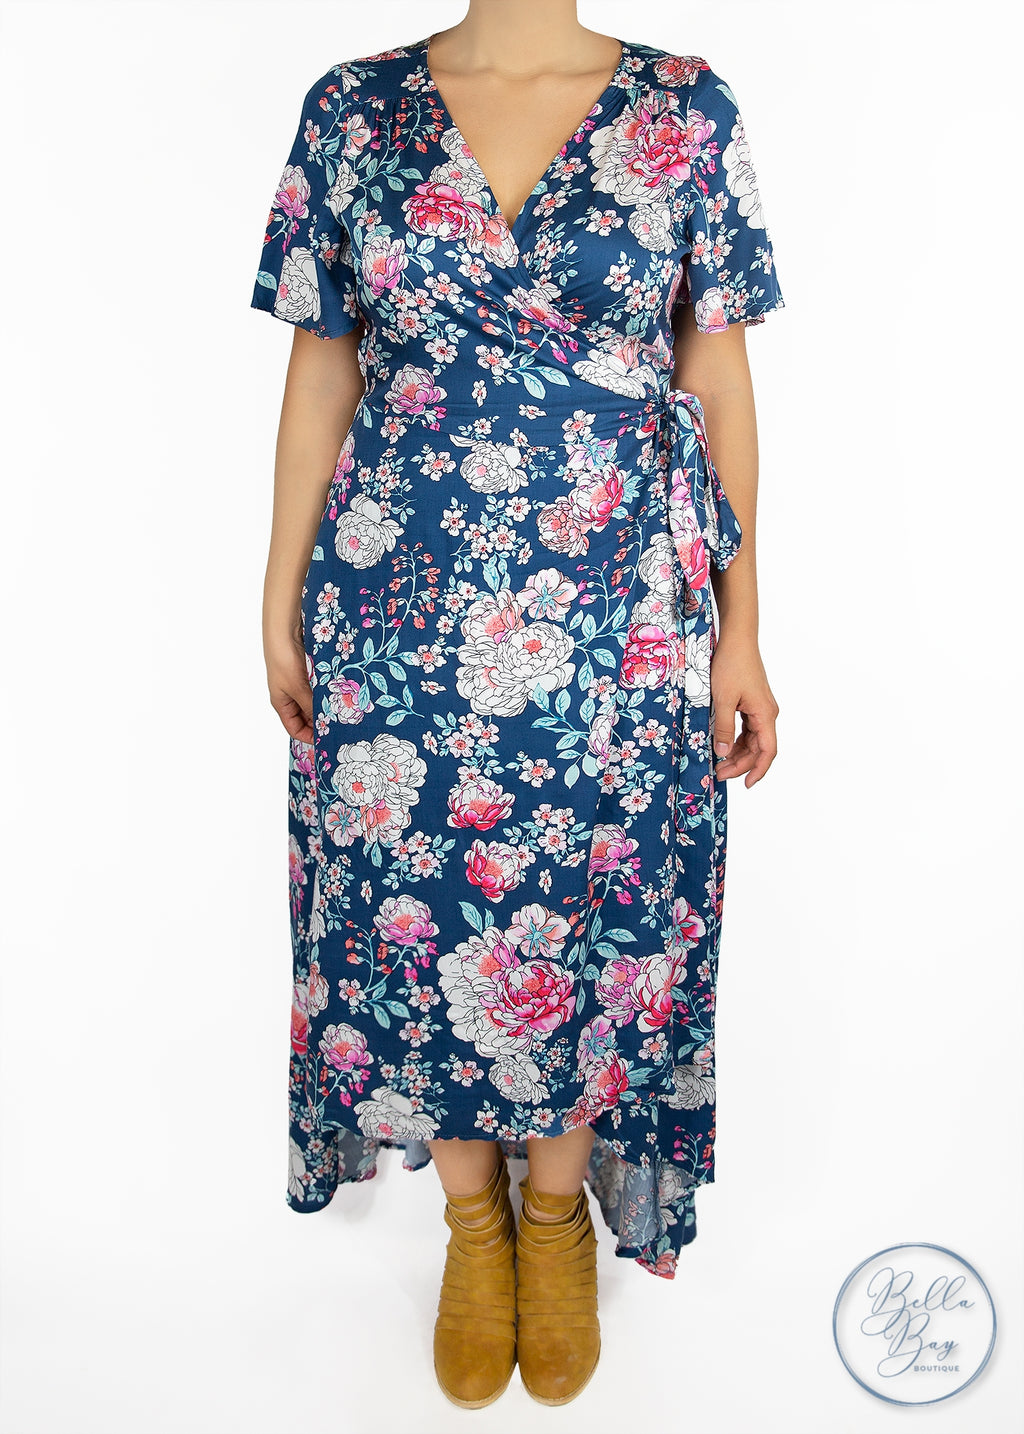 Paisley Raye Primrose Wrap Dress- Blue Floral (1X) - Paisley Raye with Bella Bay Boutique, shop now at  https://shopbellabay.com/ or locally in Newport Oregon